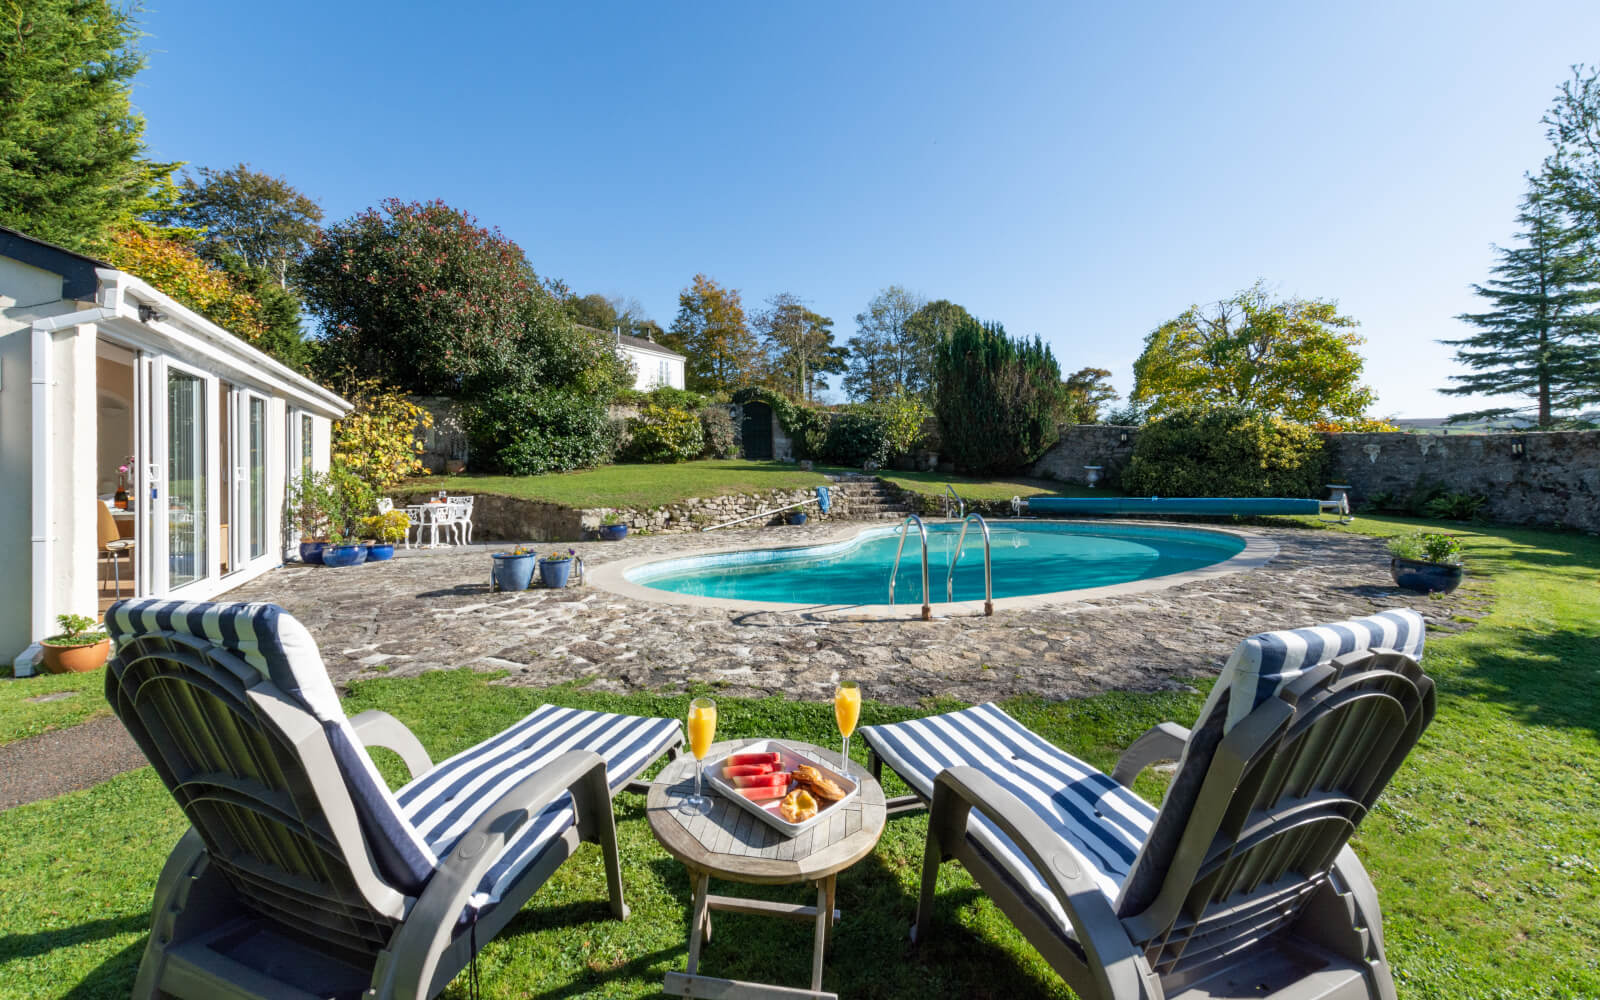 Holiday Cottages With Swimming Pools In Thropton To Rent - Save up to 60%